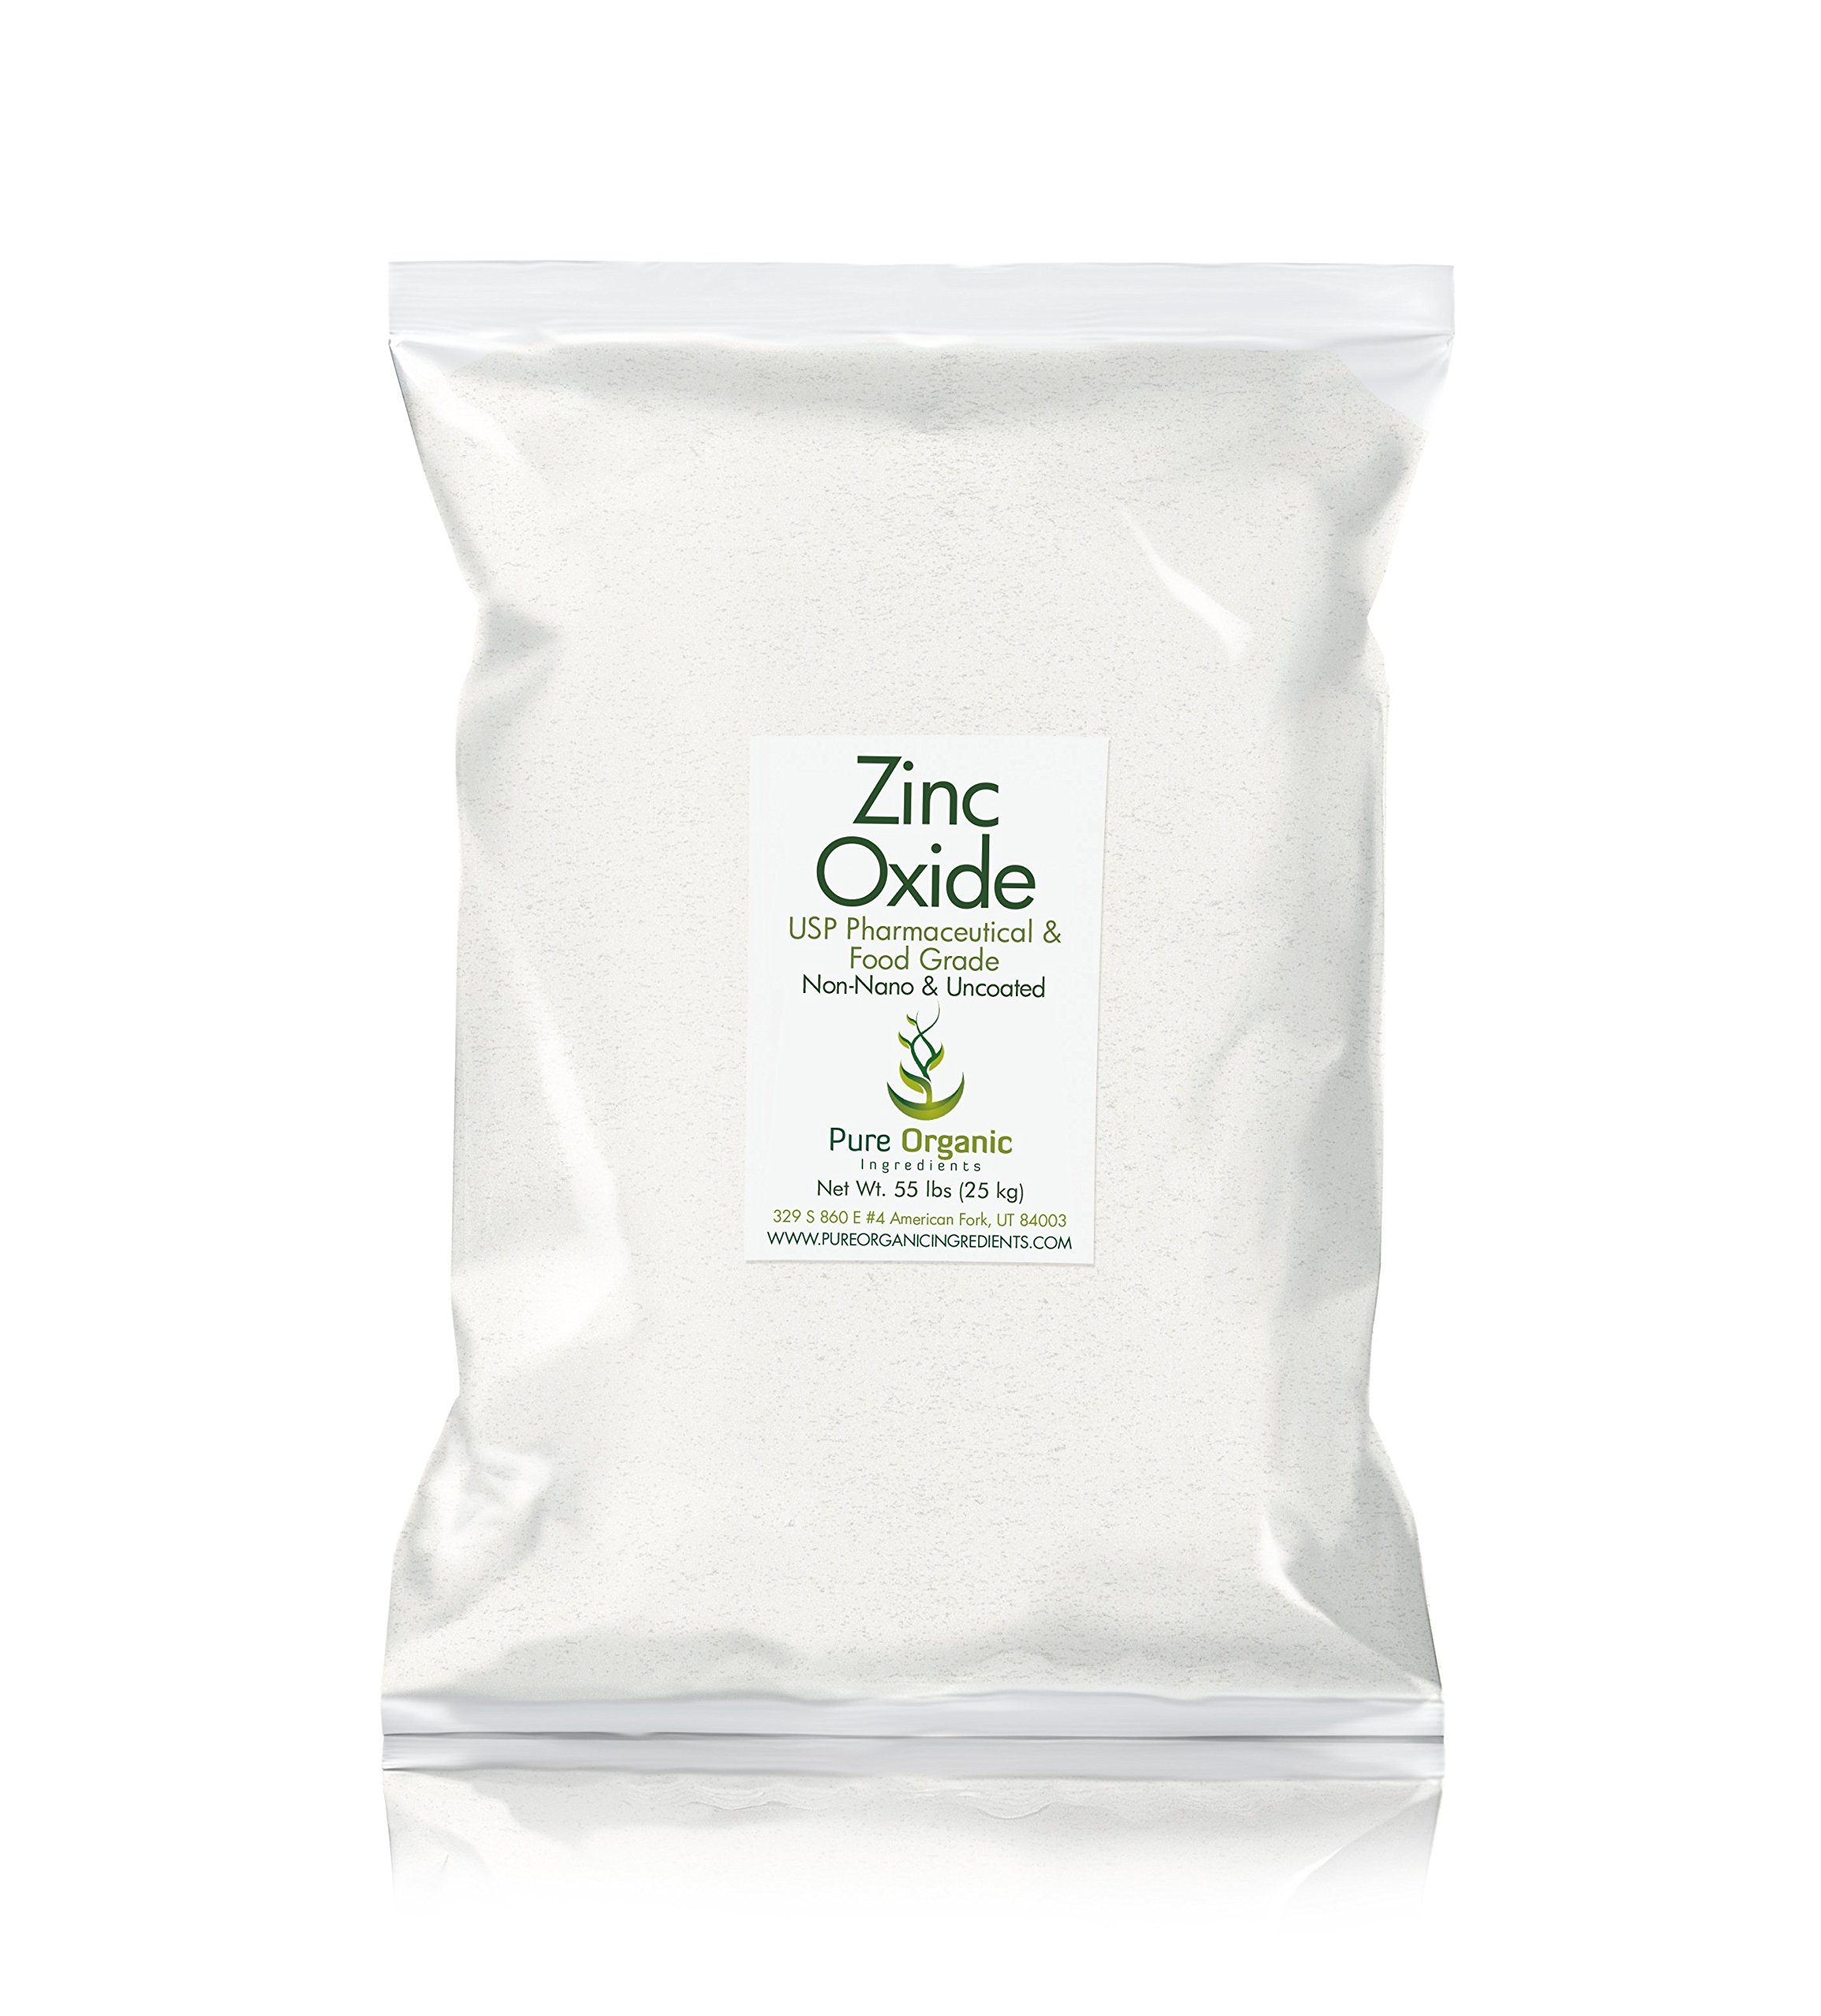 Zinc Oxide Powder (55 lb.) by Pure Organic Ingredients, Eco-Friendly Packaging, Non-Nano, Uncoated, Food & USP Grade, For Sunscreen, Diaper Rash Ointment, Burn Relief & Chapped Lips Remedy